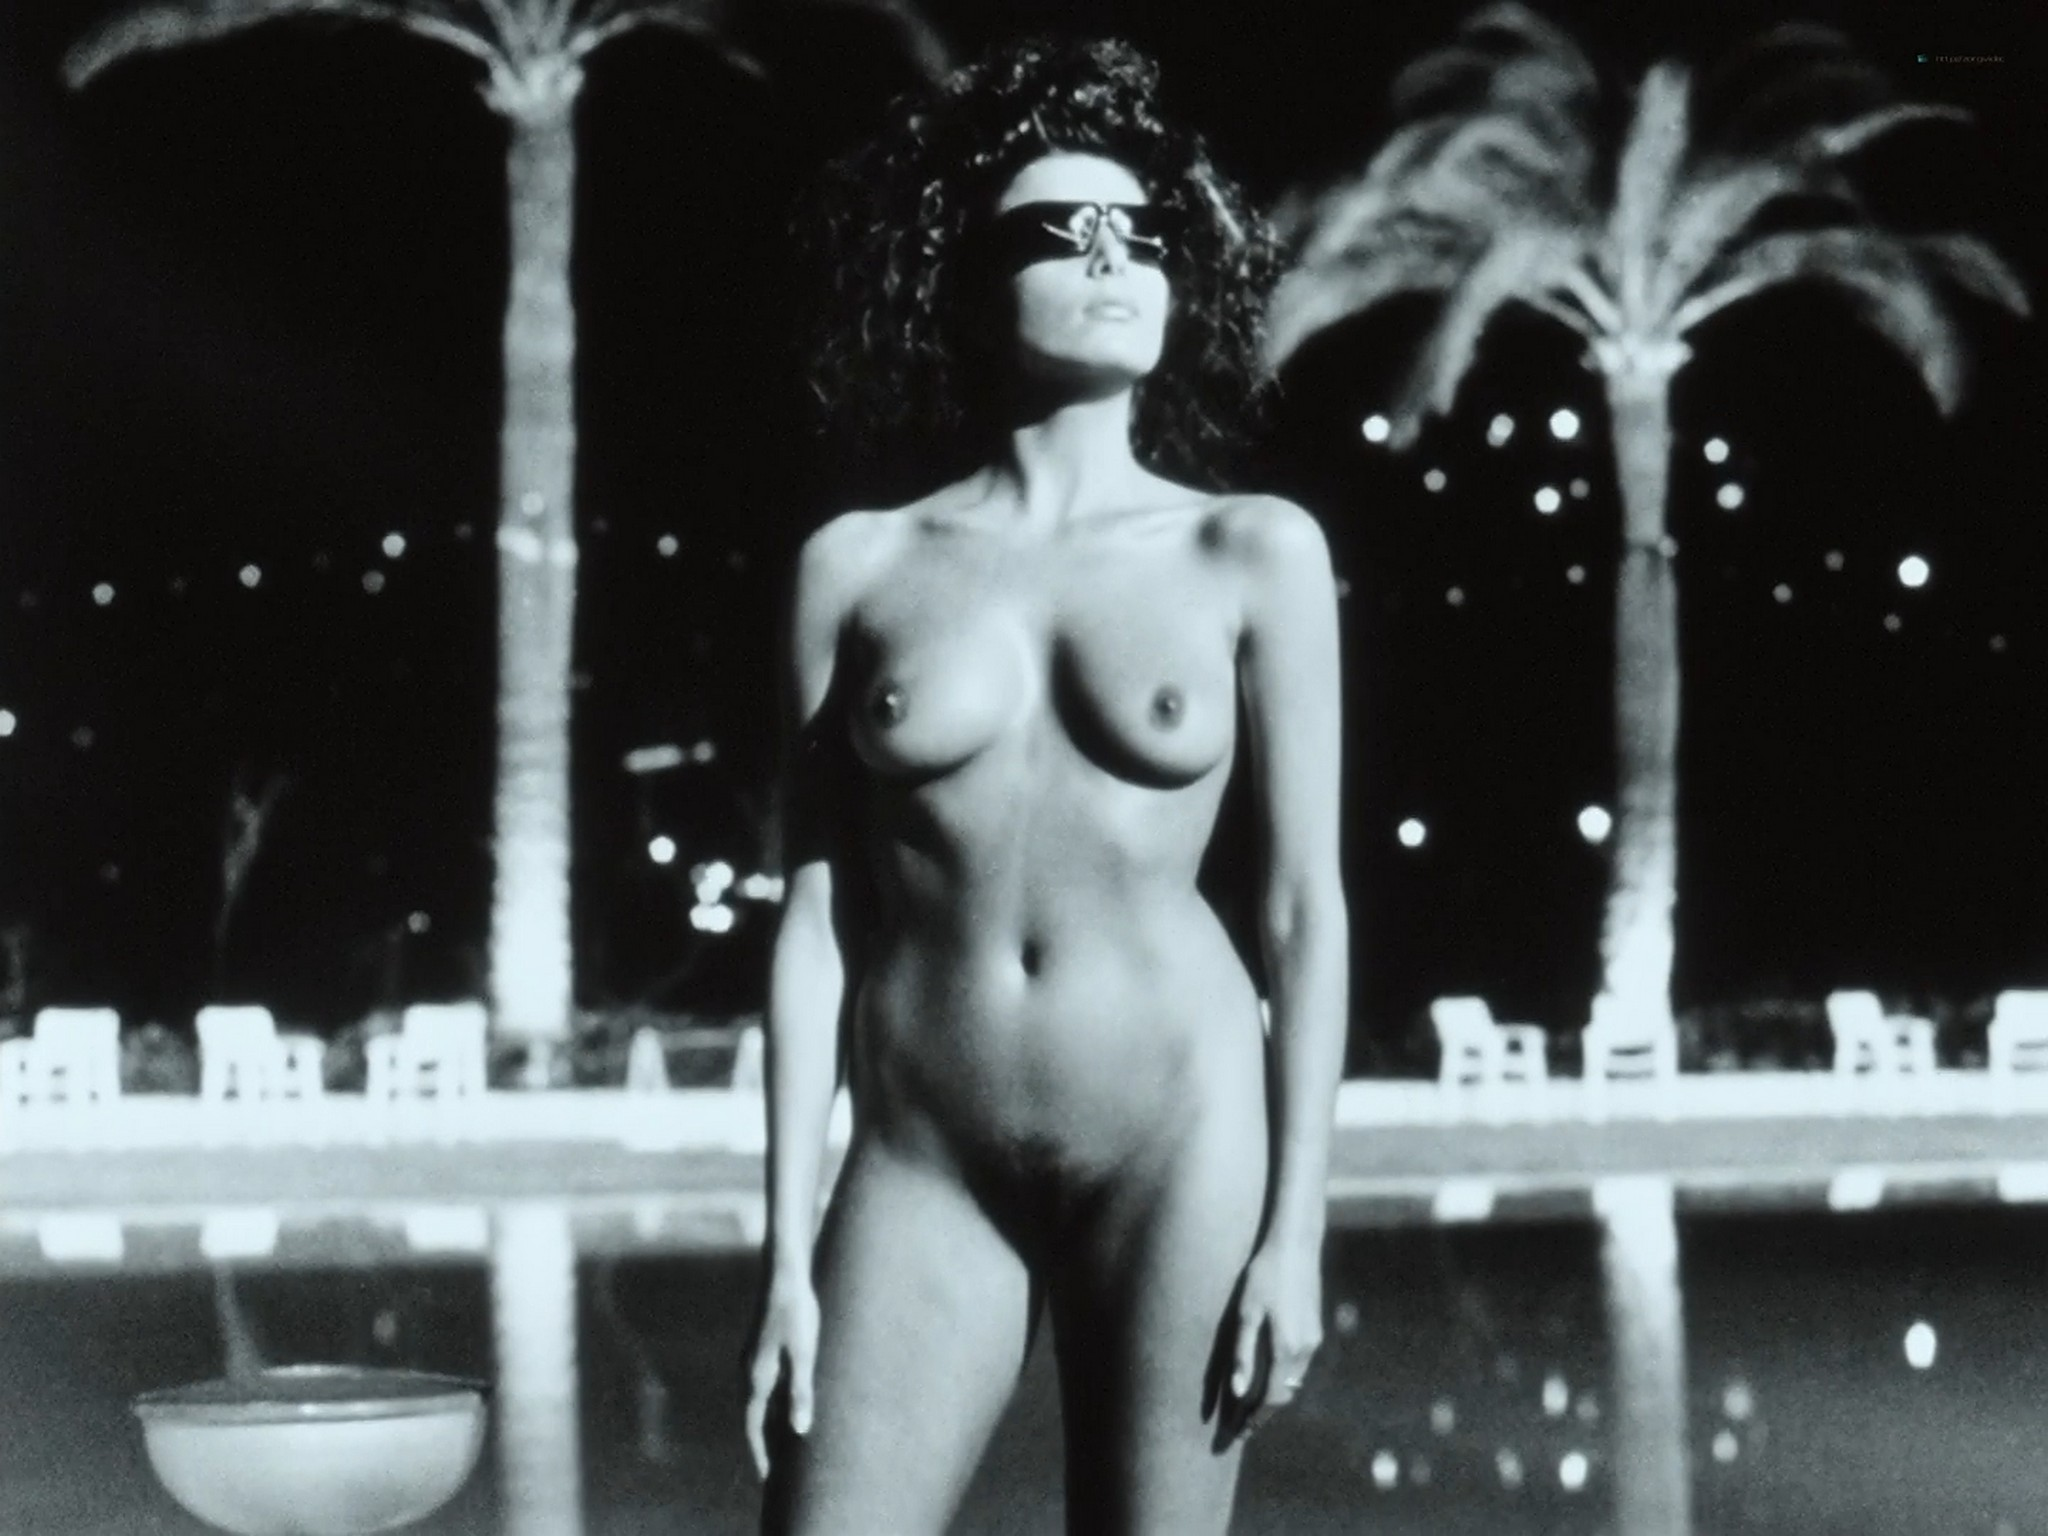 Sigourney Weaver hot Charlotte Rampling nude others nude most full frontal Helmut Newton Frames from the Edge 1989 1080p BluRay 23